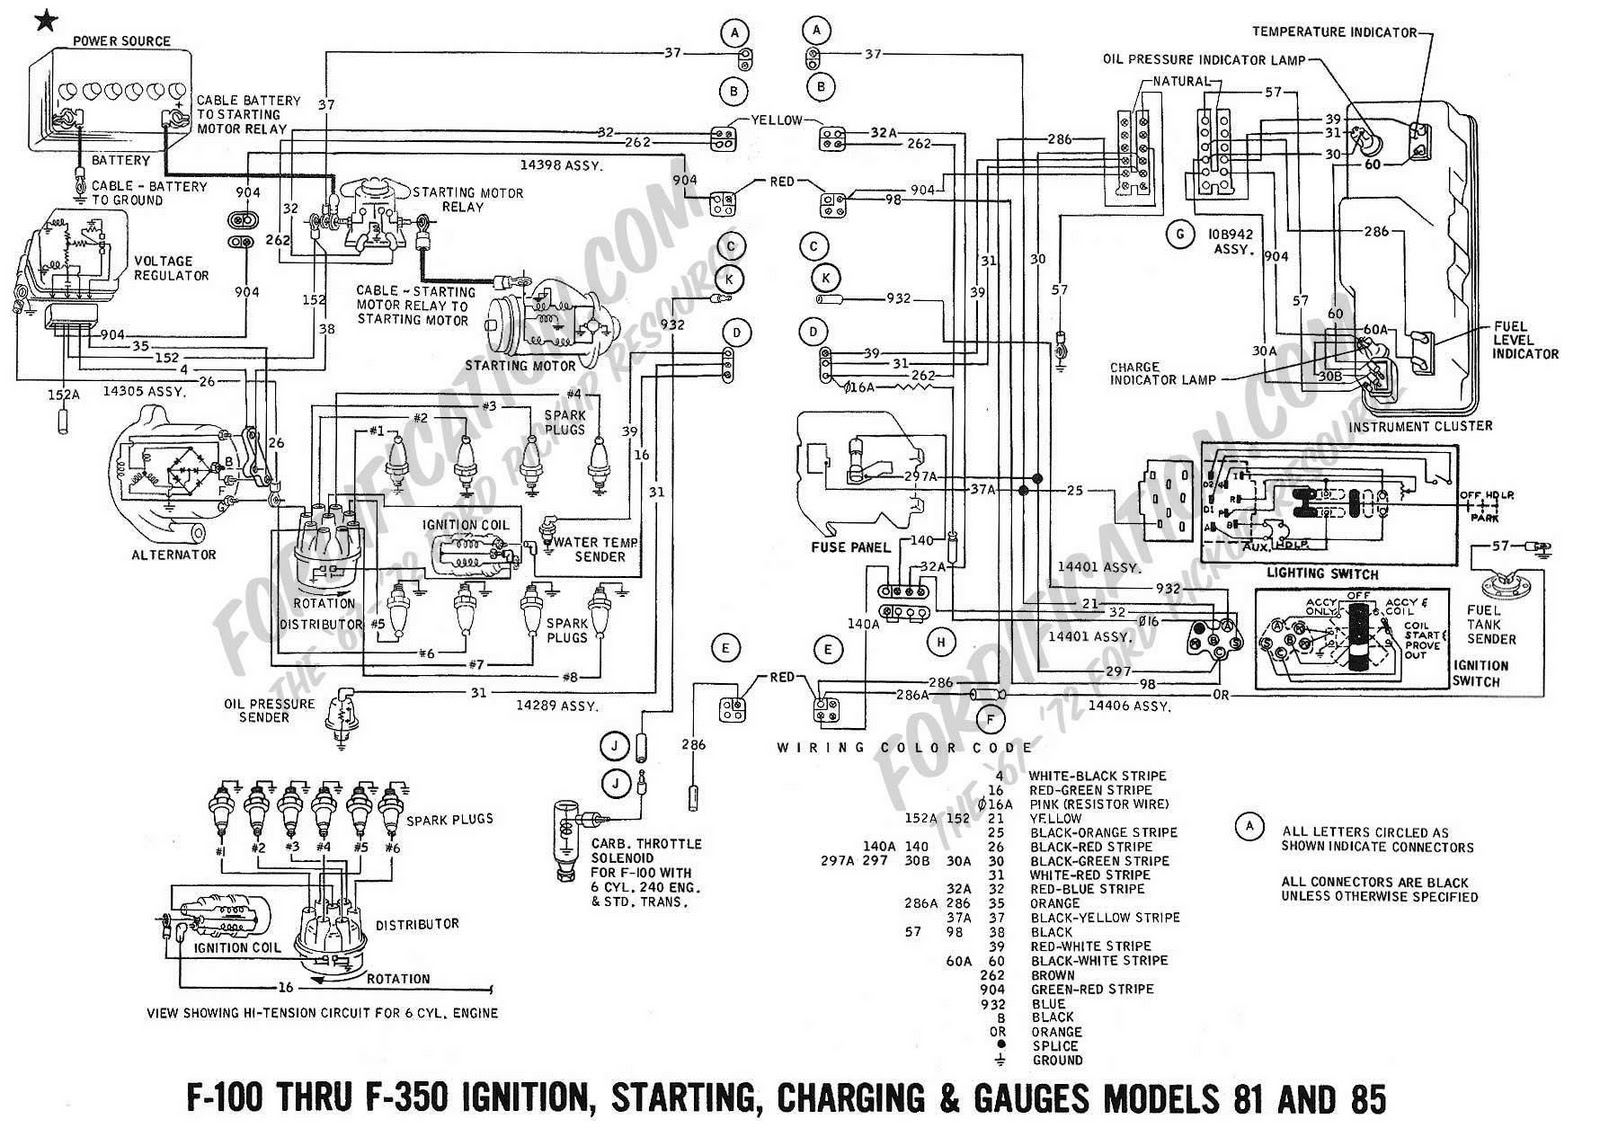 Dodge Dart Wiring Schematic Not Lossing Diagram 1969 Ford F100 F350 Ignition Starting Charging And 1970 Electrical Schematics